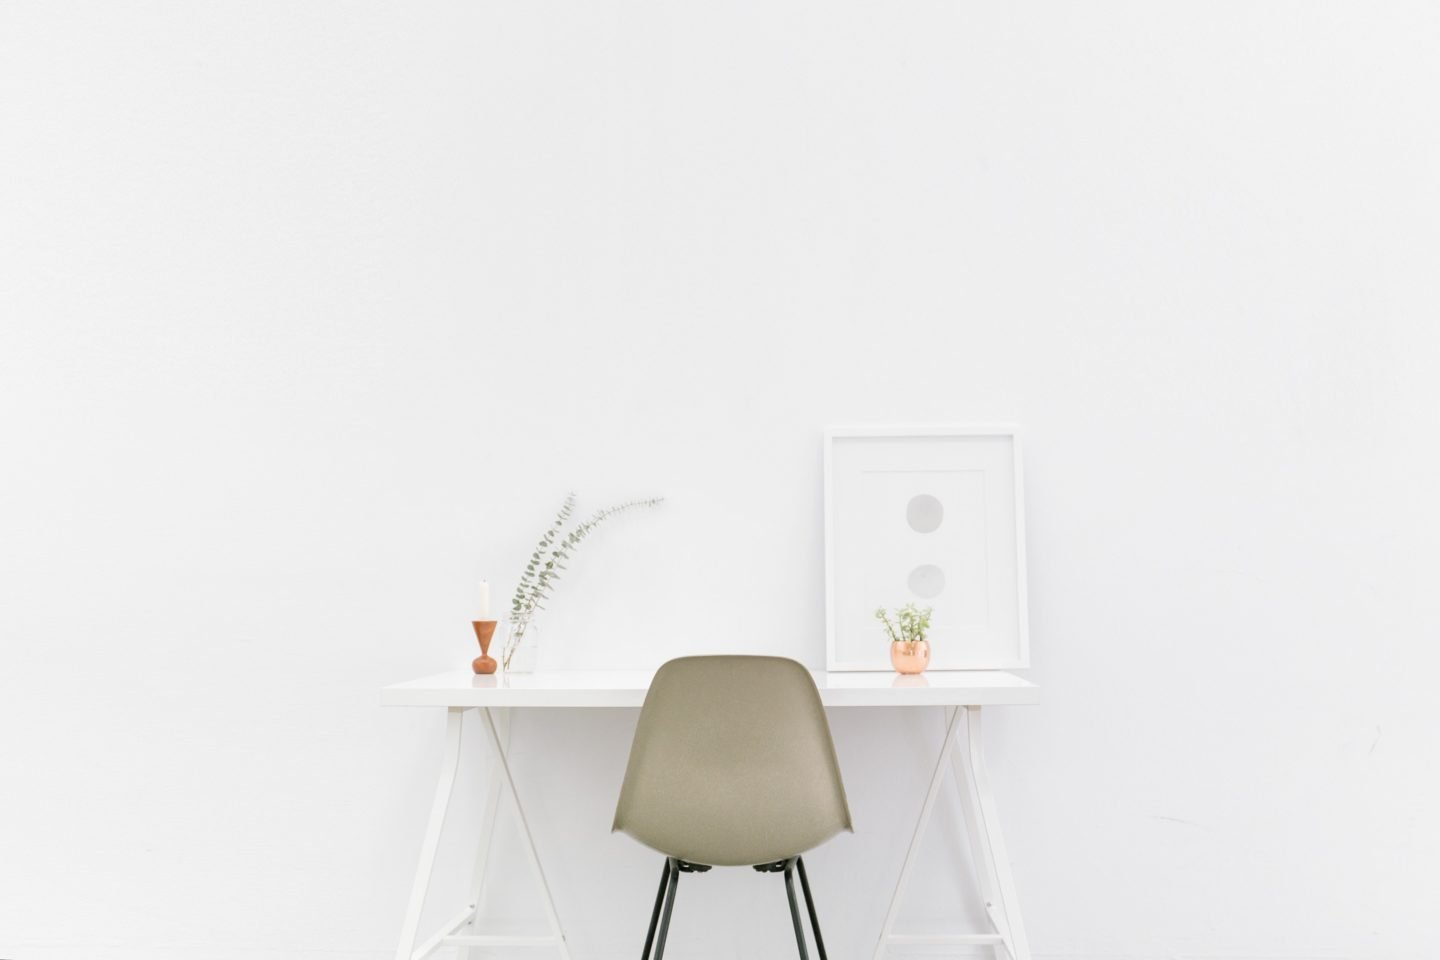 The Key Technologies for a Minimalist Home white table and chairs